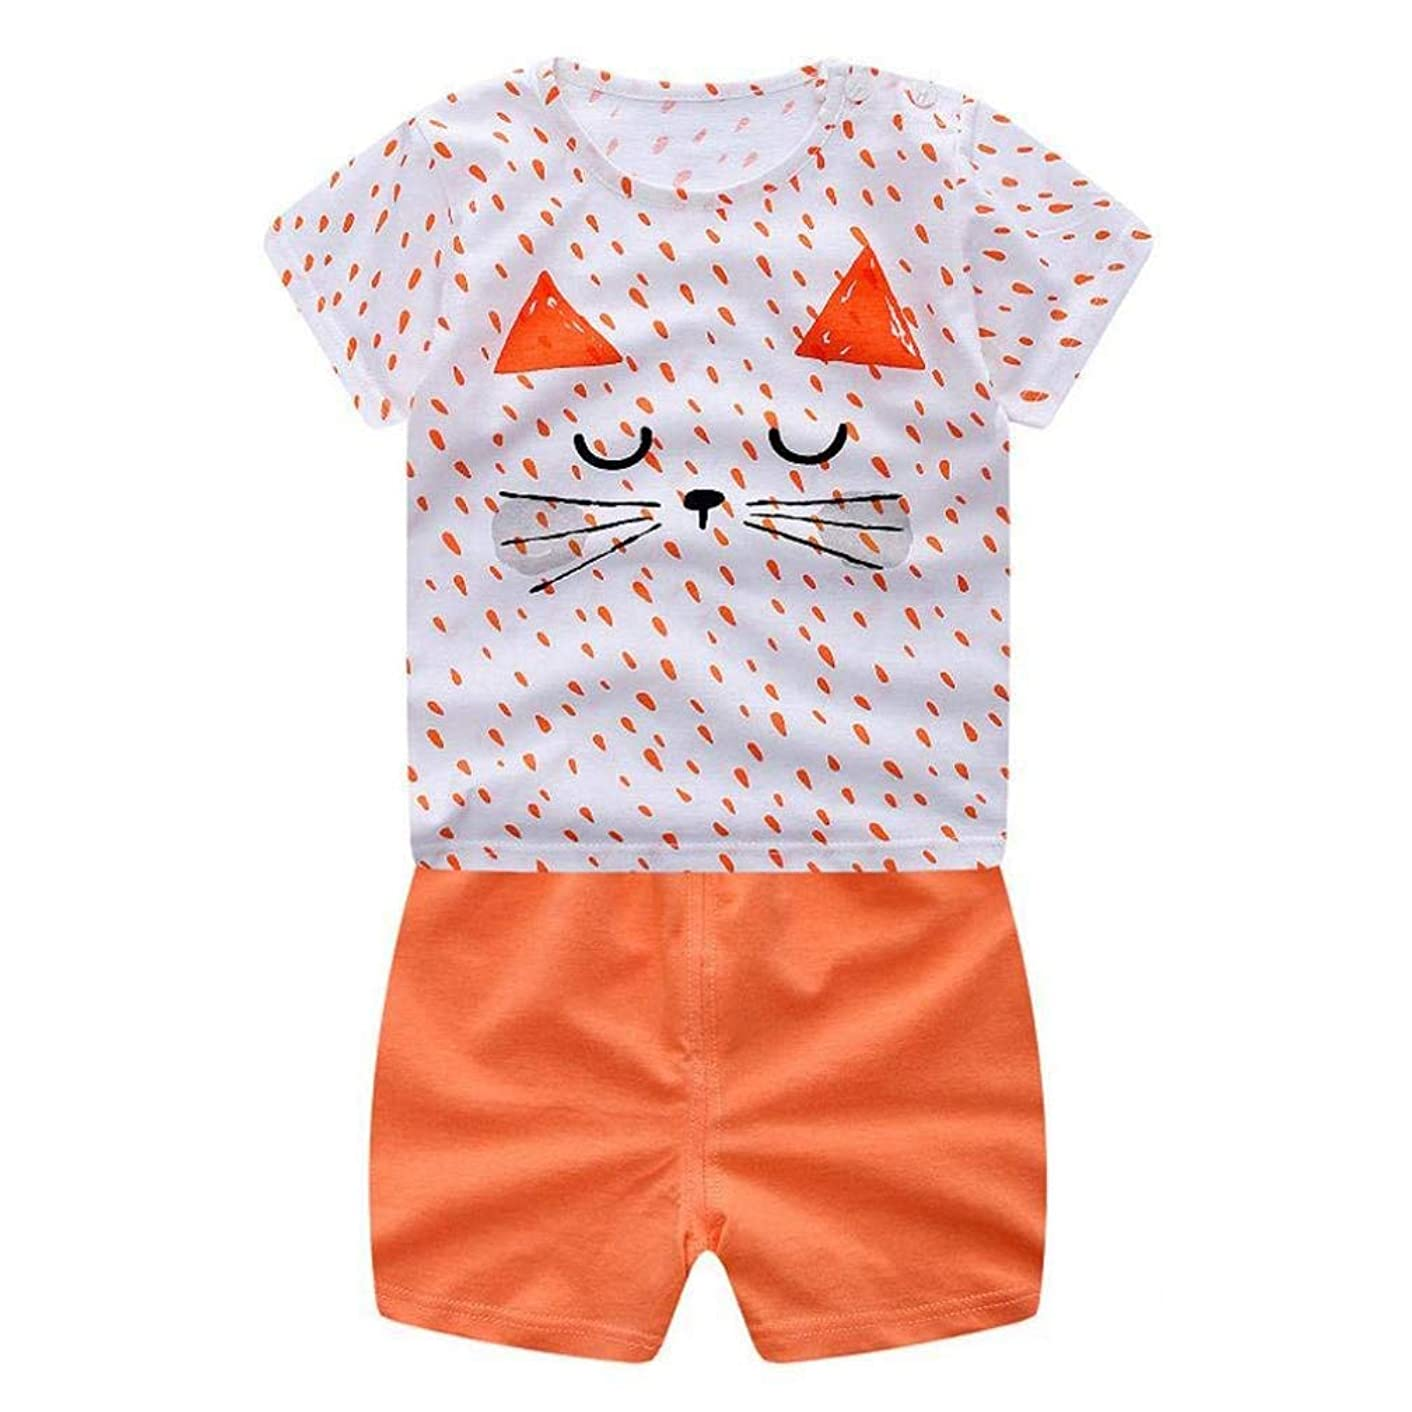 0-3T Toddler Kids Baby Boys Girls 2pcs Outfit Set Cute Cartoon Summer Tops T-Shirt +Shorts Leggings Clothes